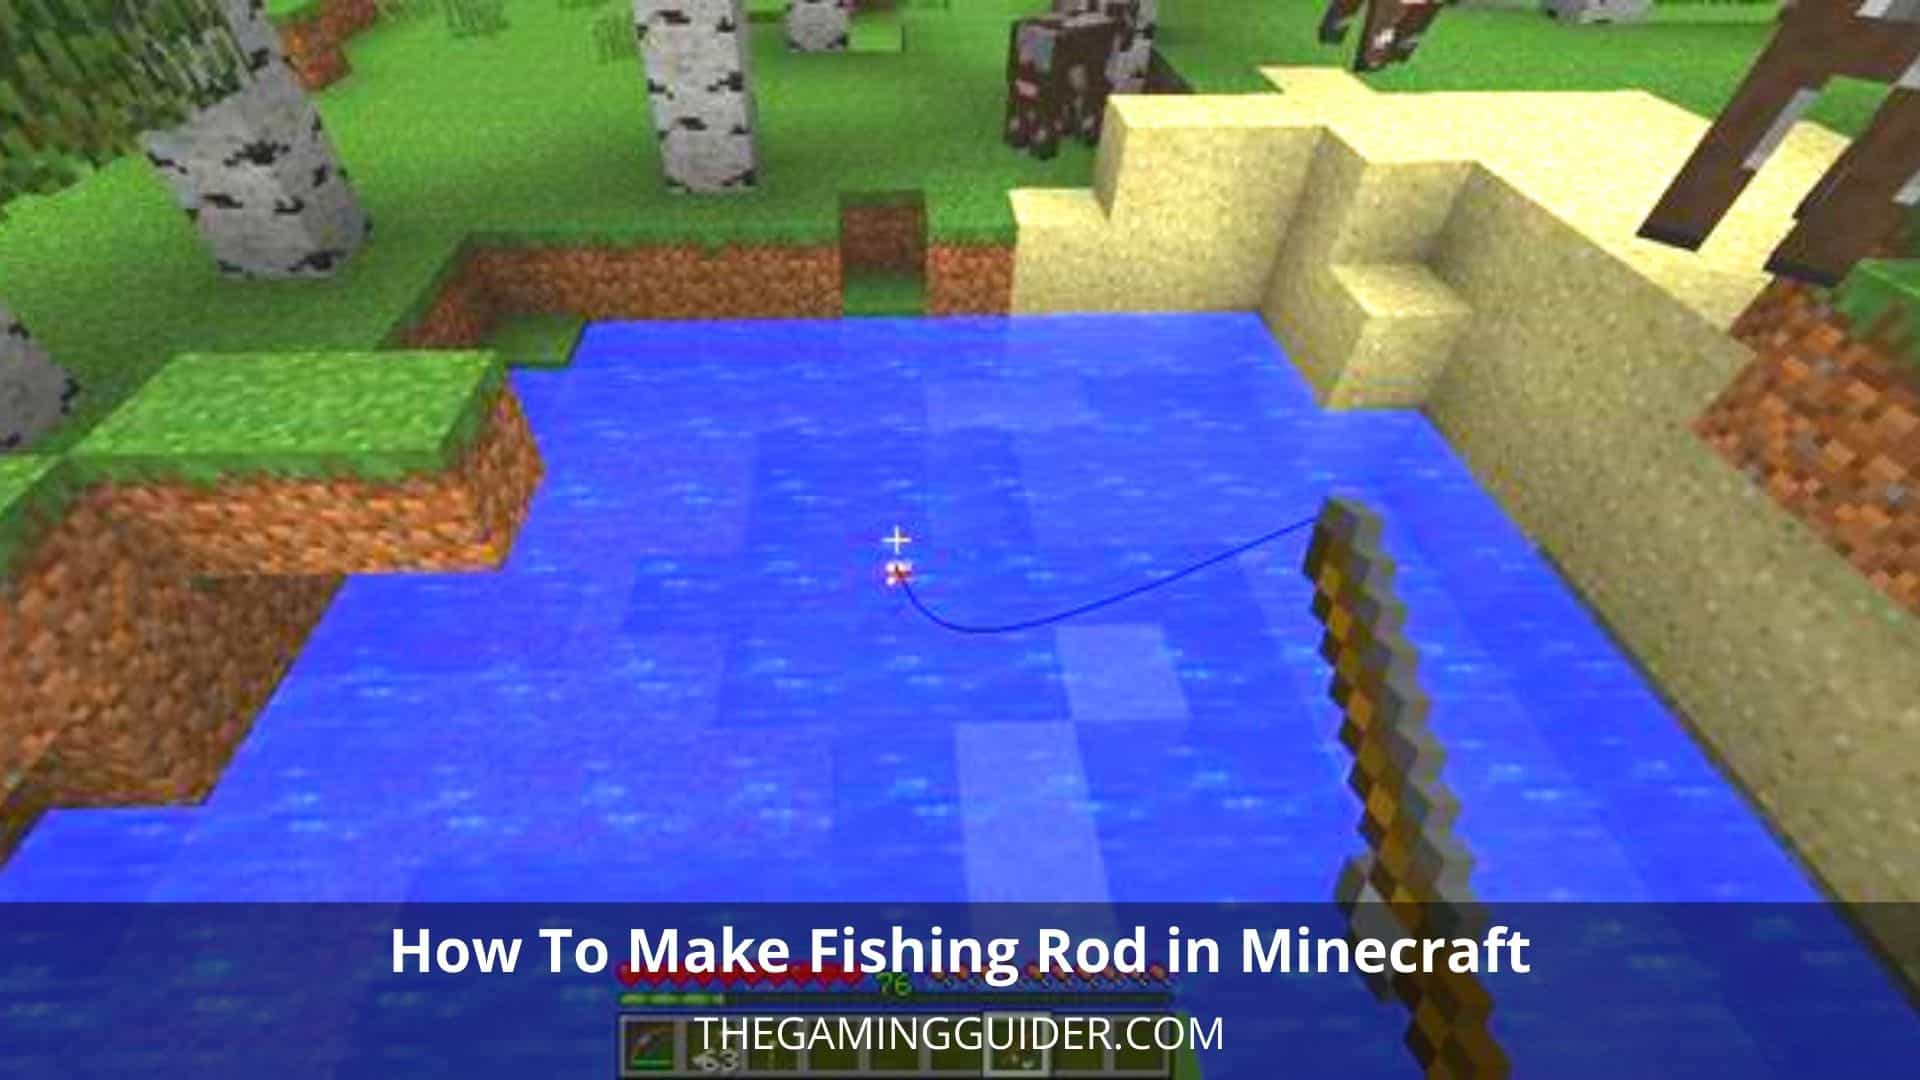 How To Make Fishing Rod in Minecraft-the gaming guider